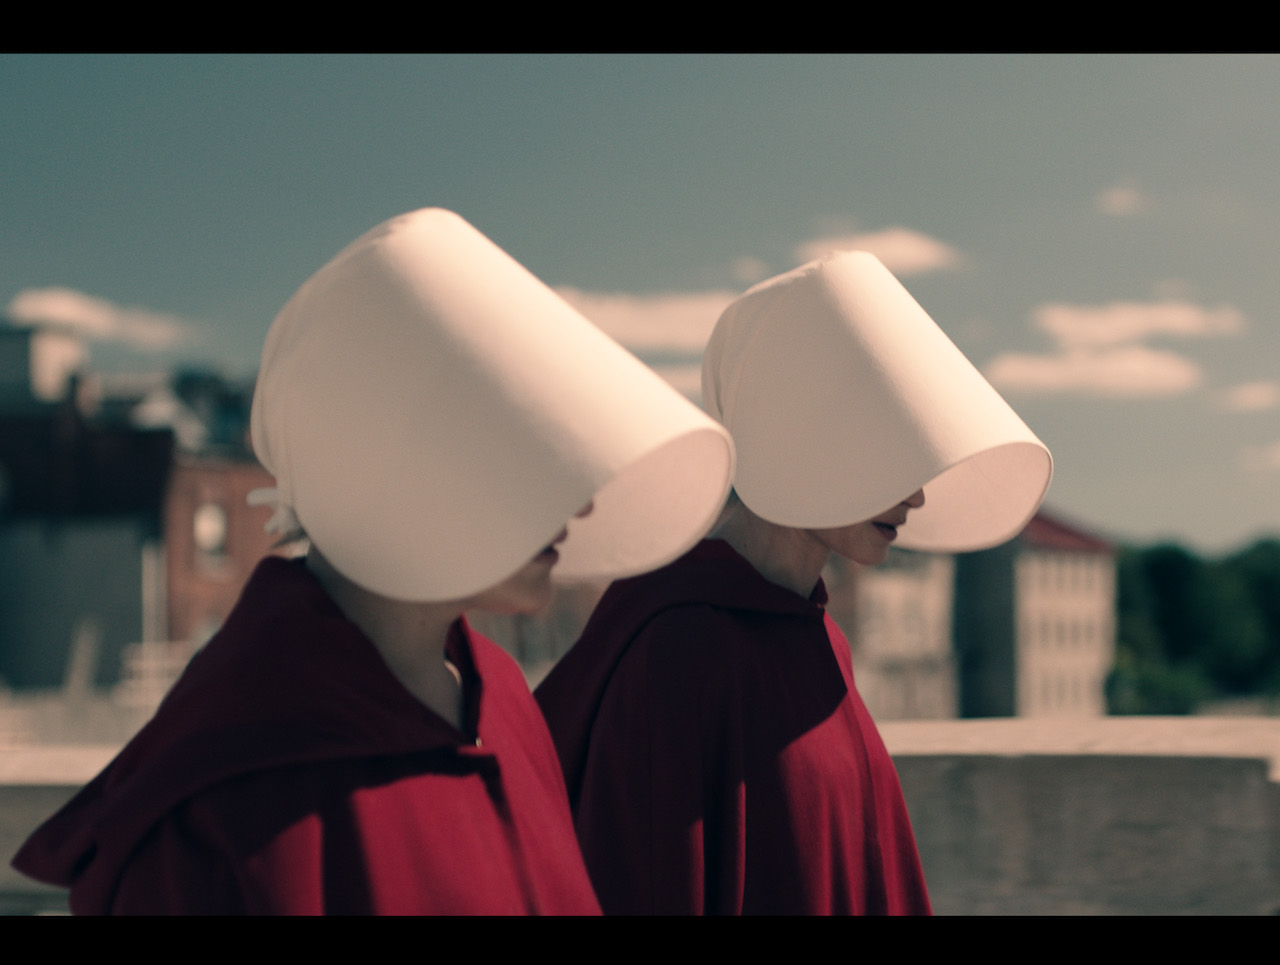 memory handmaids tale 2017-6-7  the handmaid's tale recap: praised be, bitch  the handmaids file quietly in two red rows  not moira, not even the memory of the friend who was always ready.